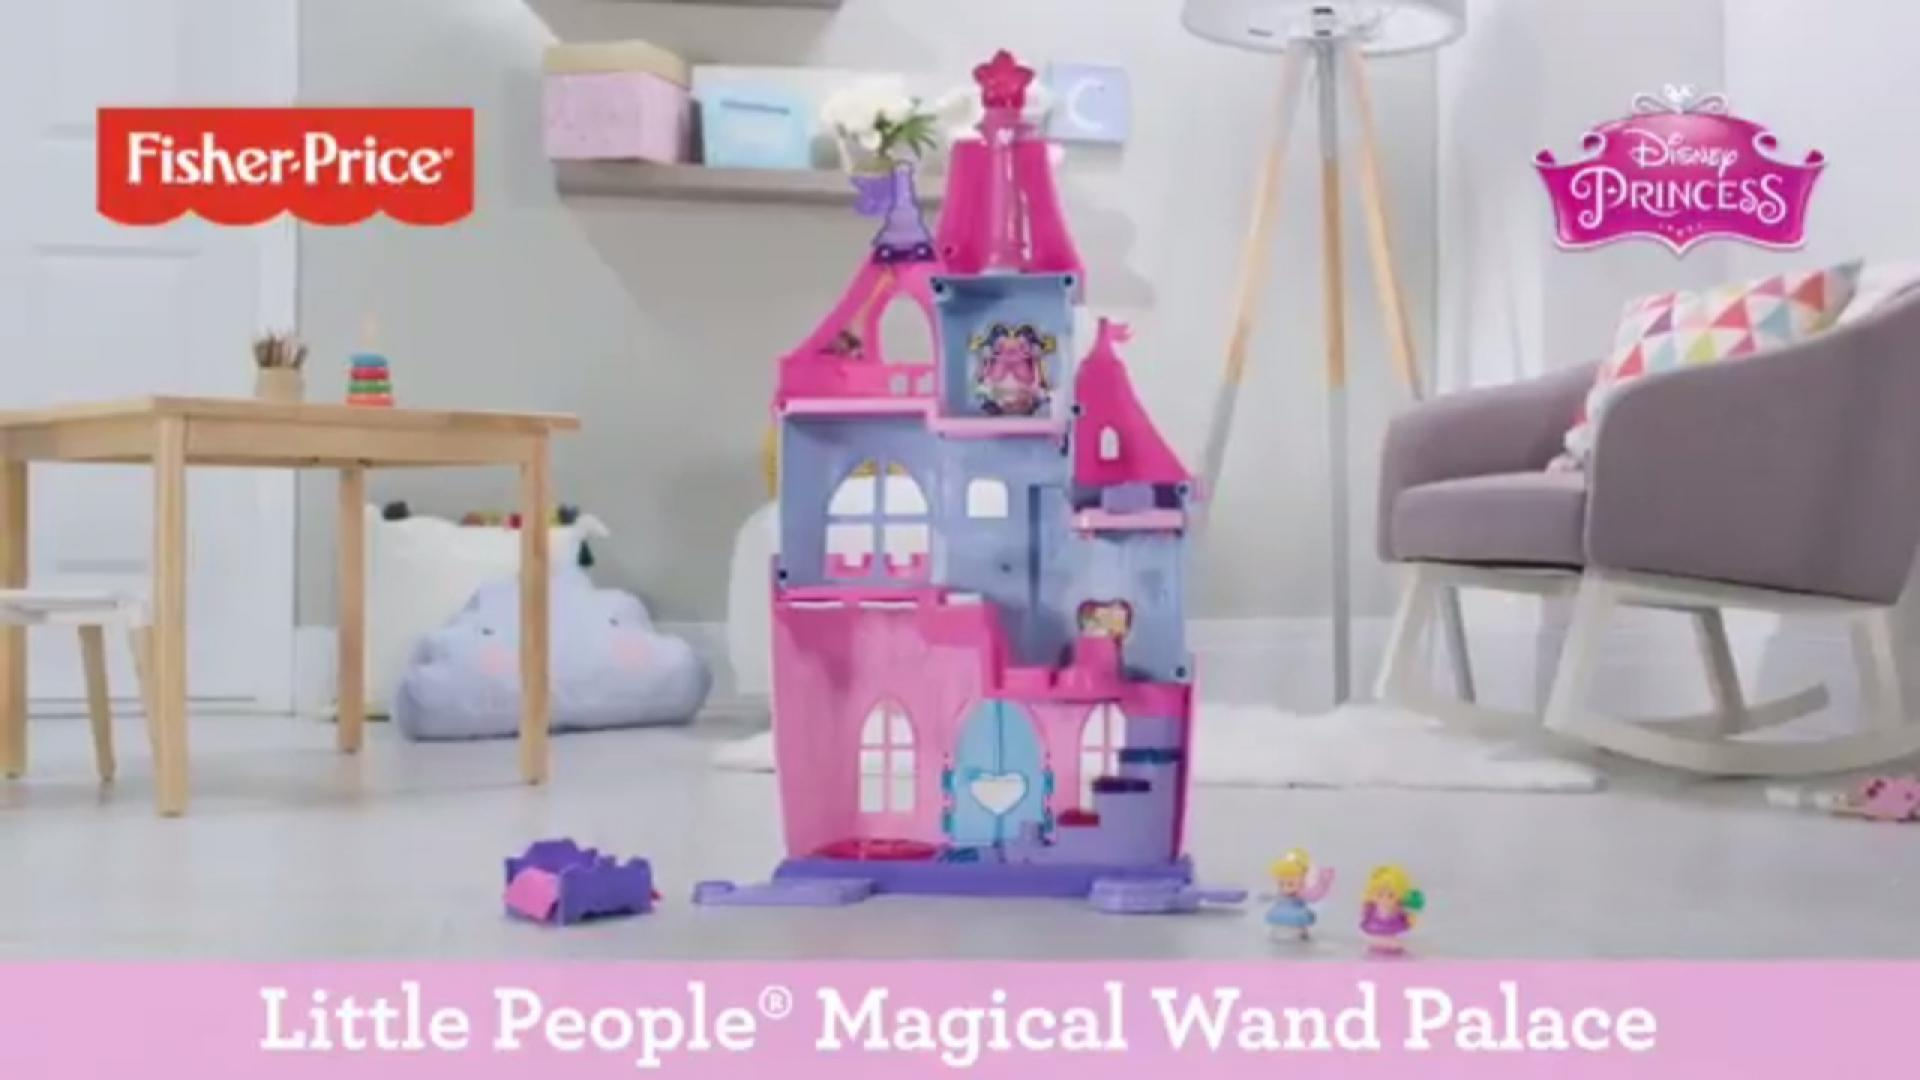 Disney Princess Magical Wand Palace by Little People® | Fisher-Price